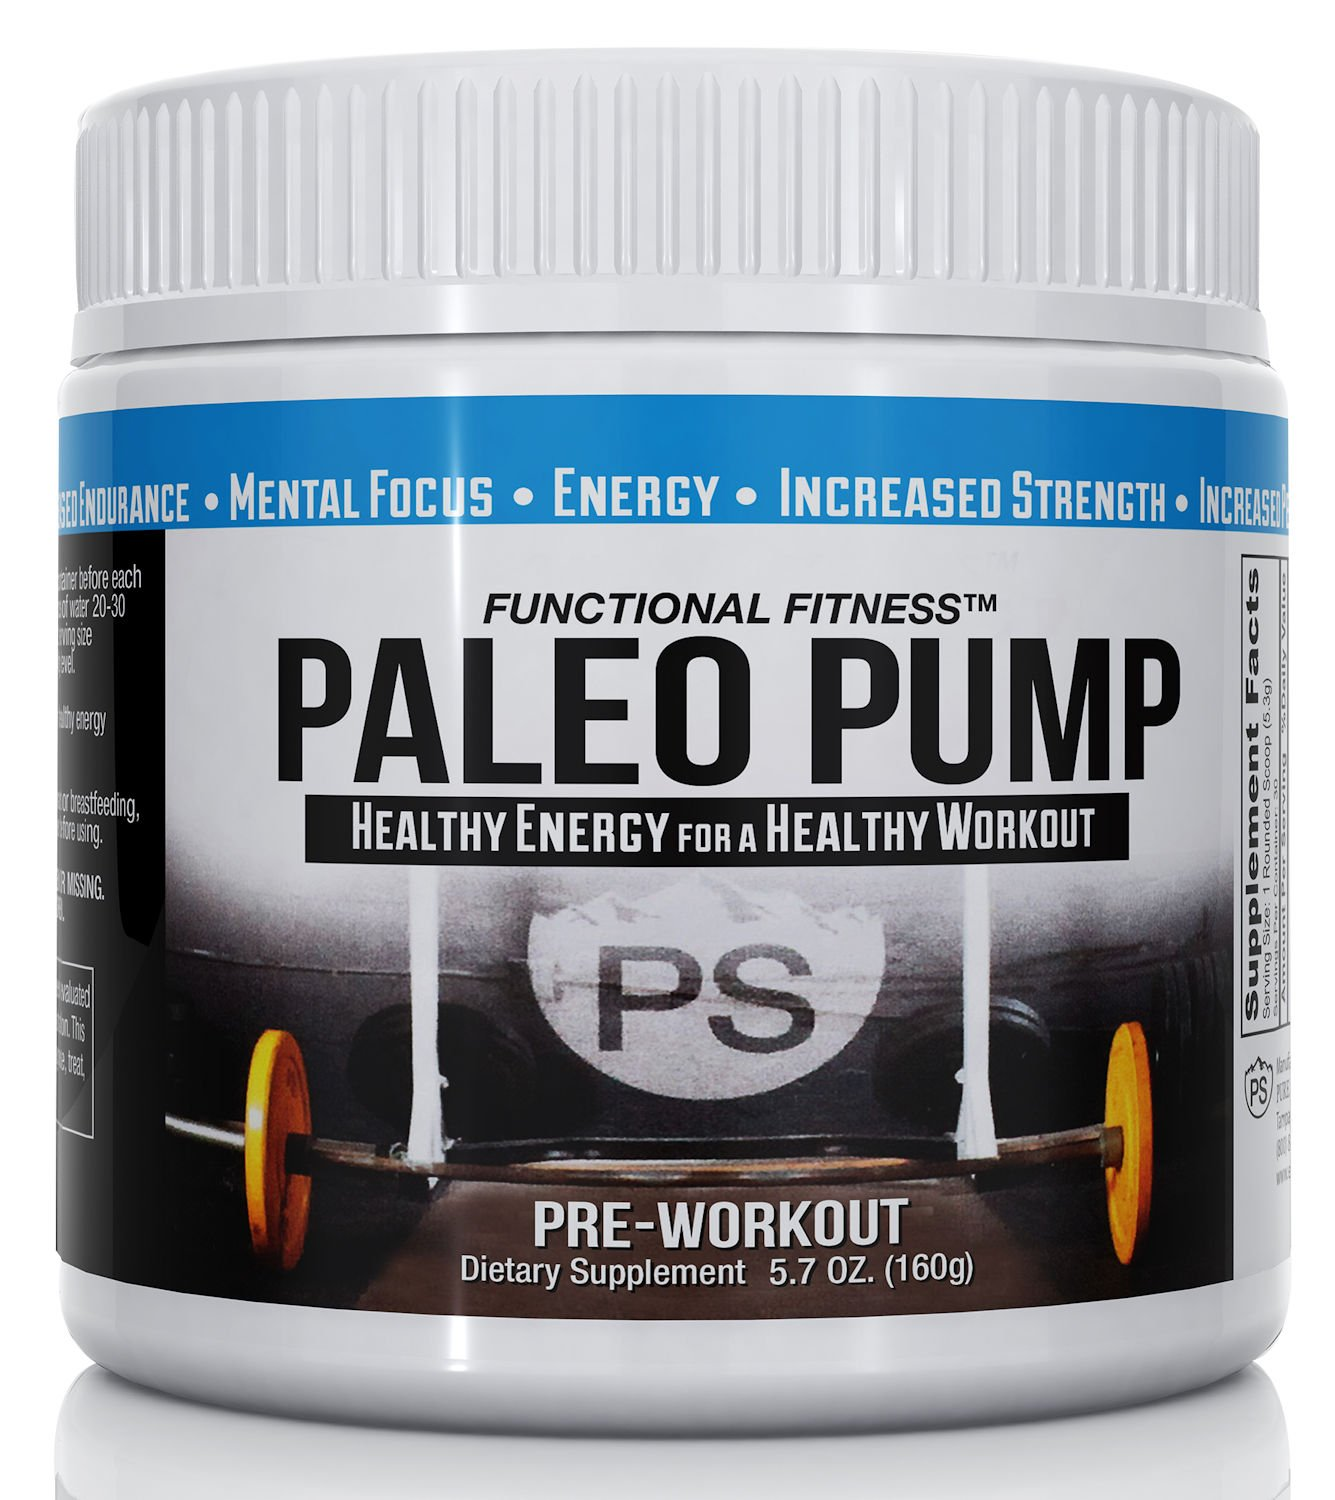 #1 Rated PALEO PUMP All Natural Pre-Workout Energy Blend | 30 Servings Per Container | No Additives All Natural Flavoring | 5.7 oz Jar | Paleo Diet Friendly | Free Shipping! by Paleo Pump